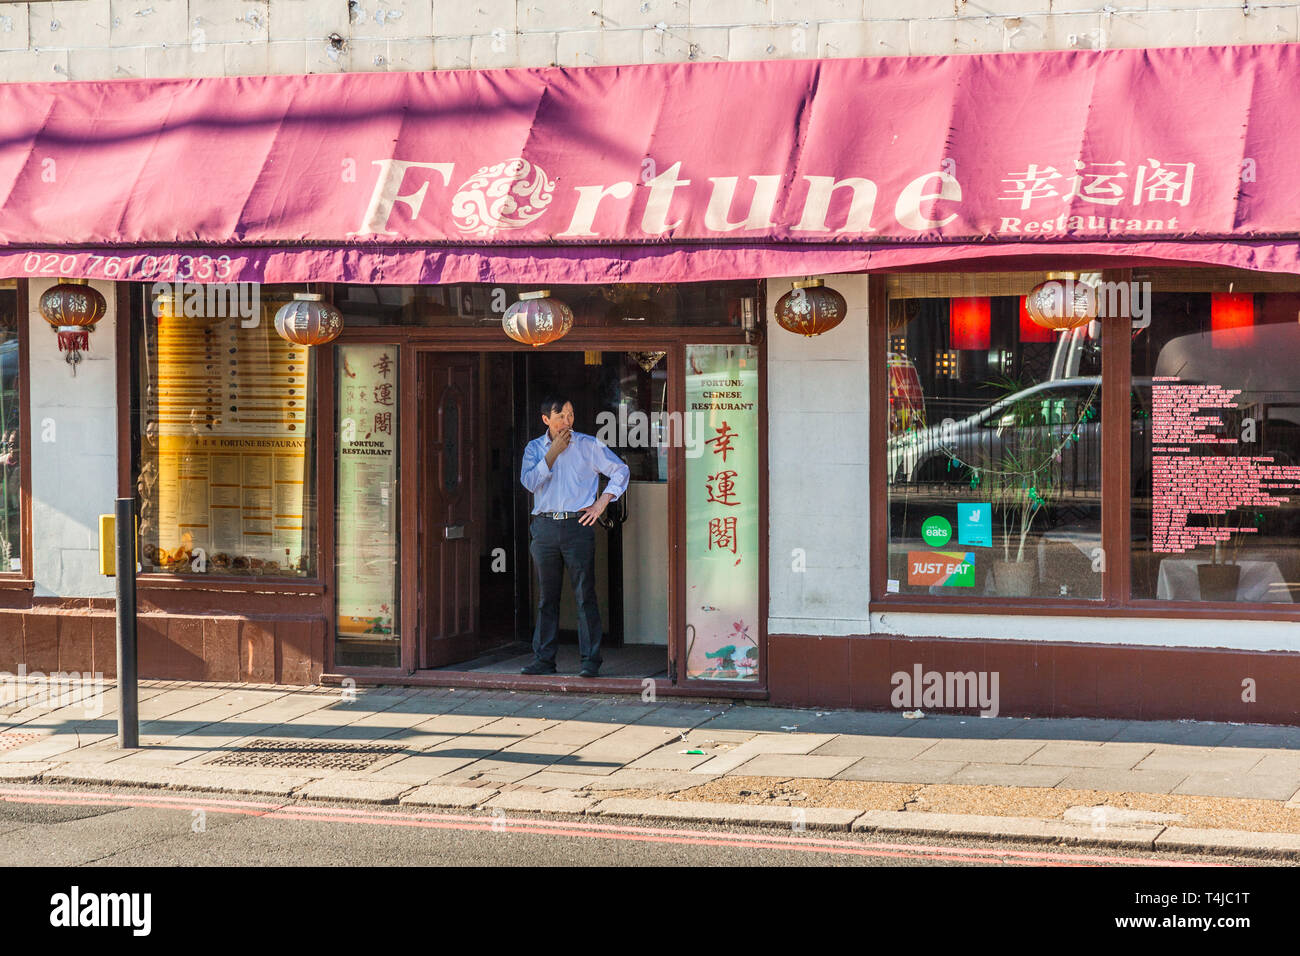 Fortune Chinese restaurant ,142 W Cromwell Road, London, England, United Kingdom. - Stock Image